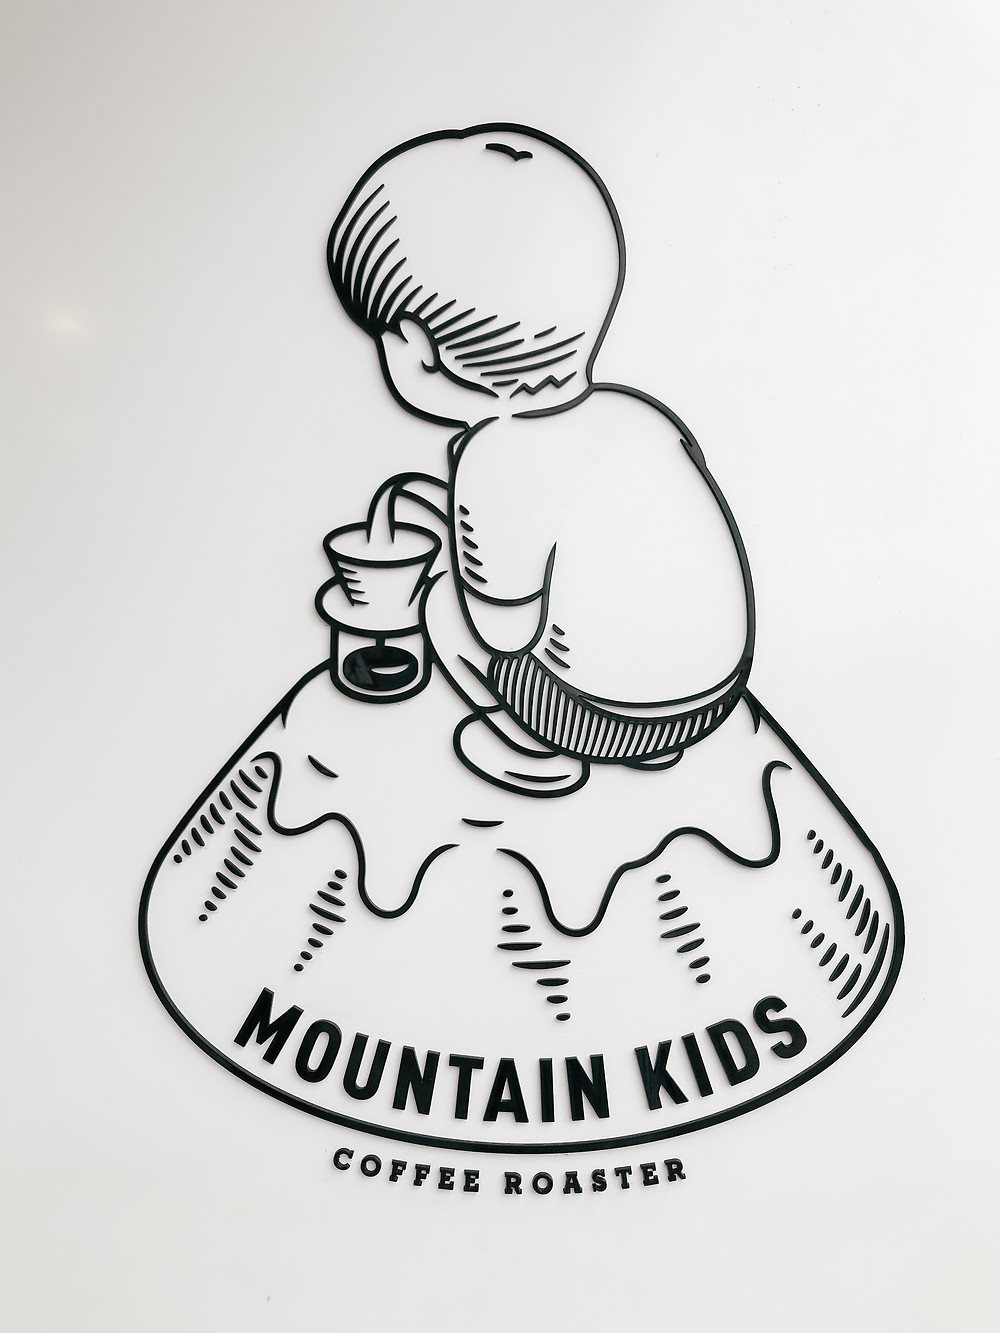 MKCR / Mountain Kids Coffee Roasters 山小孩咖啡 | Taipei Cafe | A Style Alike